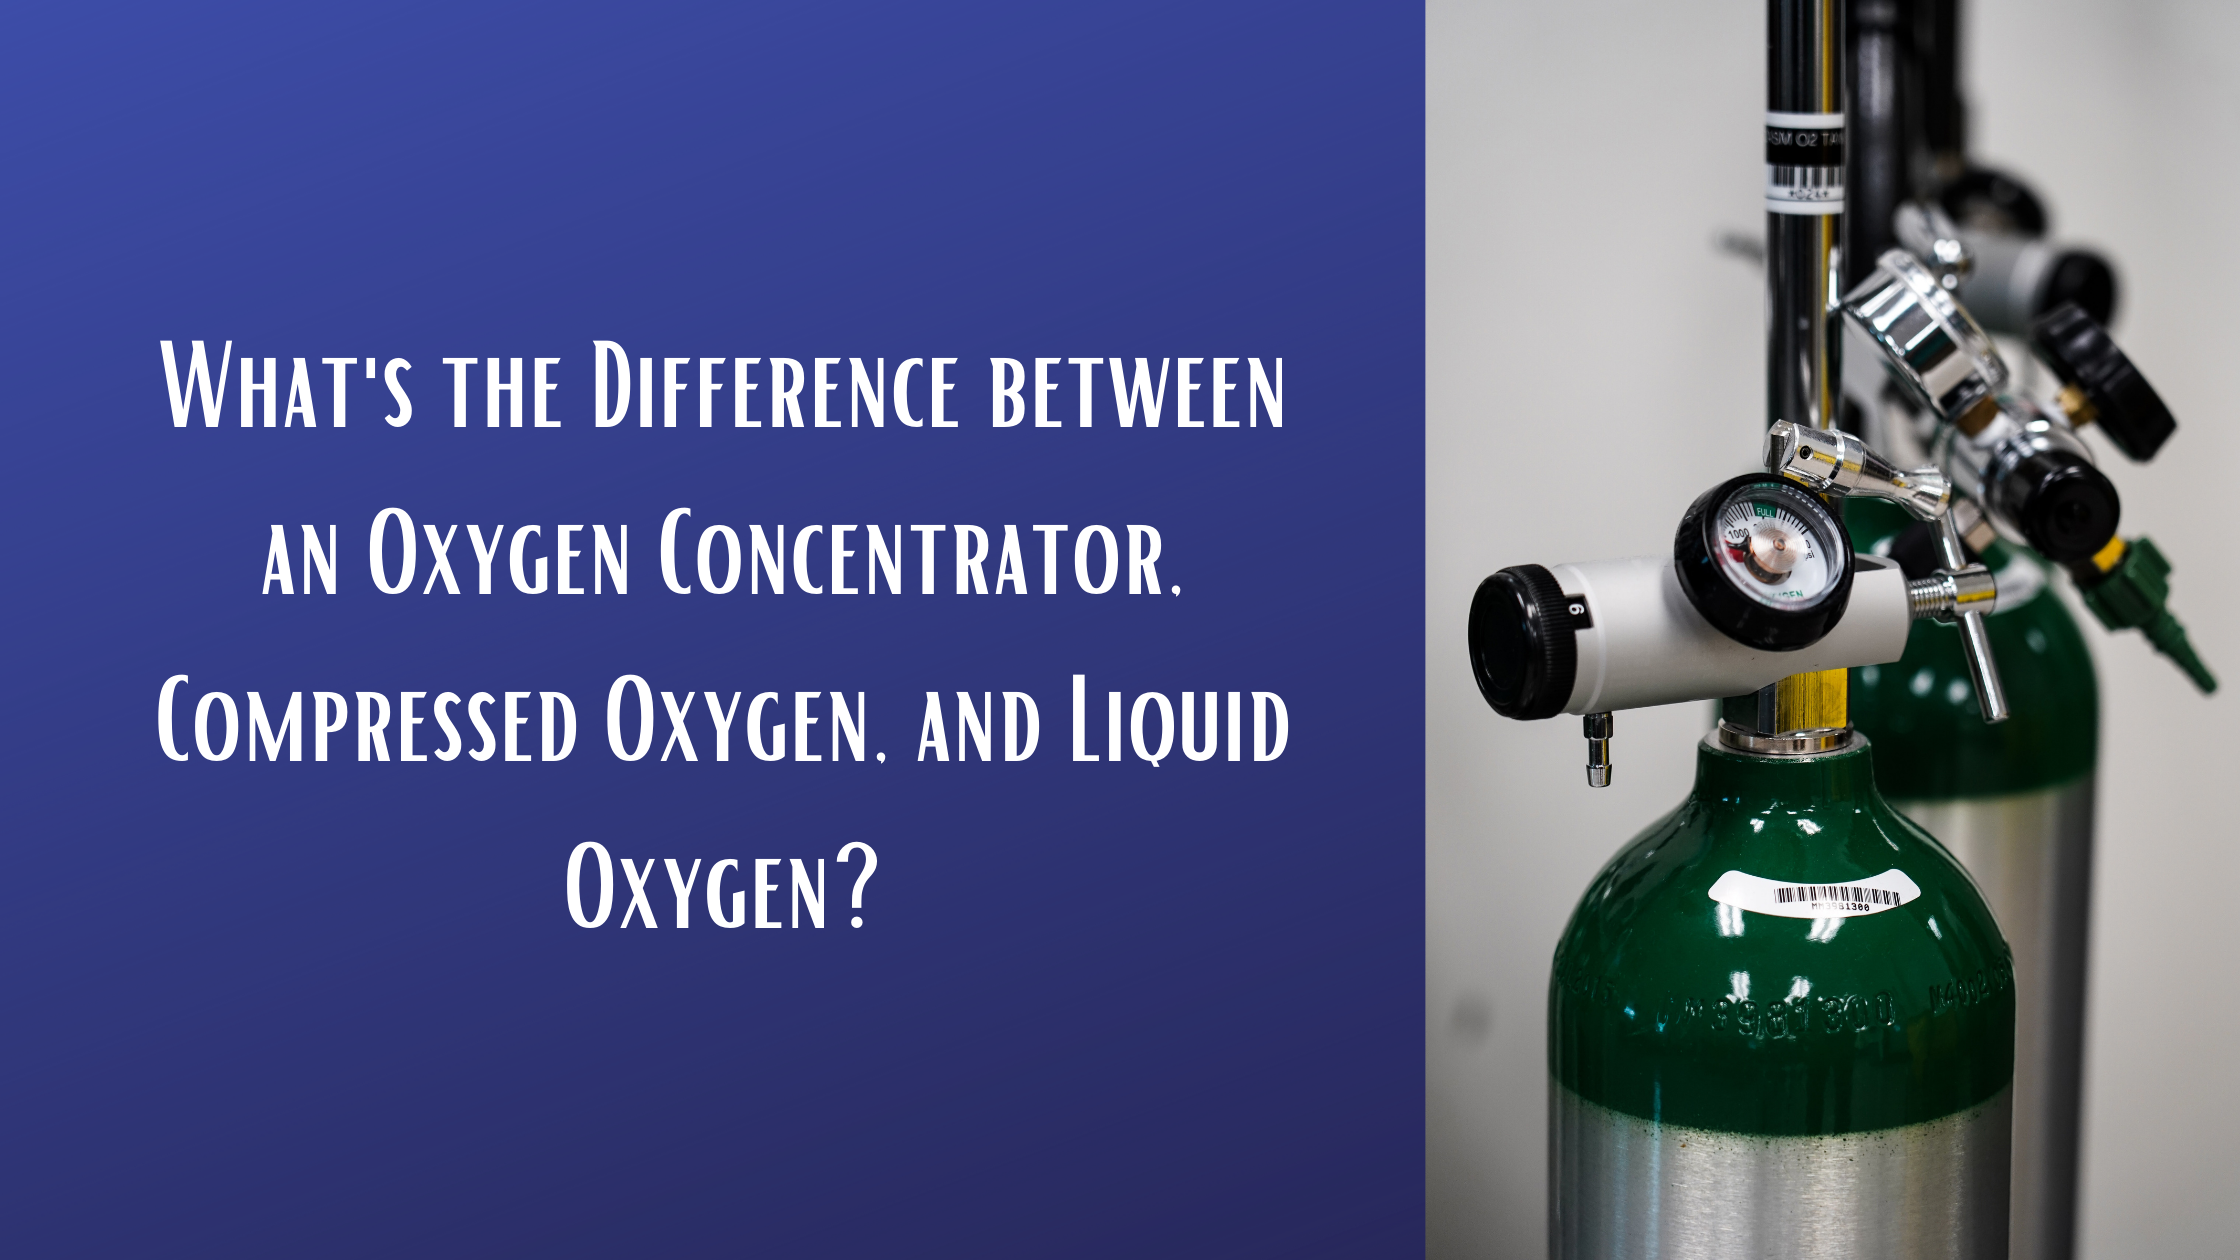 Whats the Difference between an Oxygen Concentrator, Compressed Oxygen, and Liquid Oxygen?